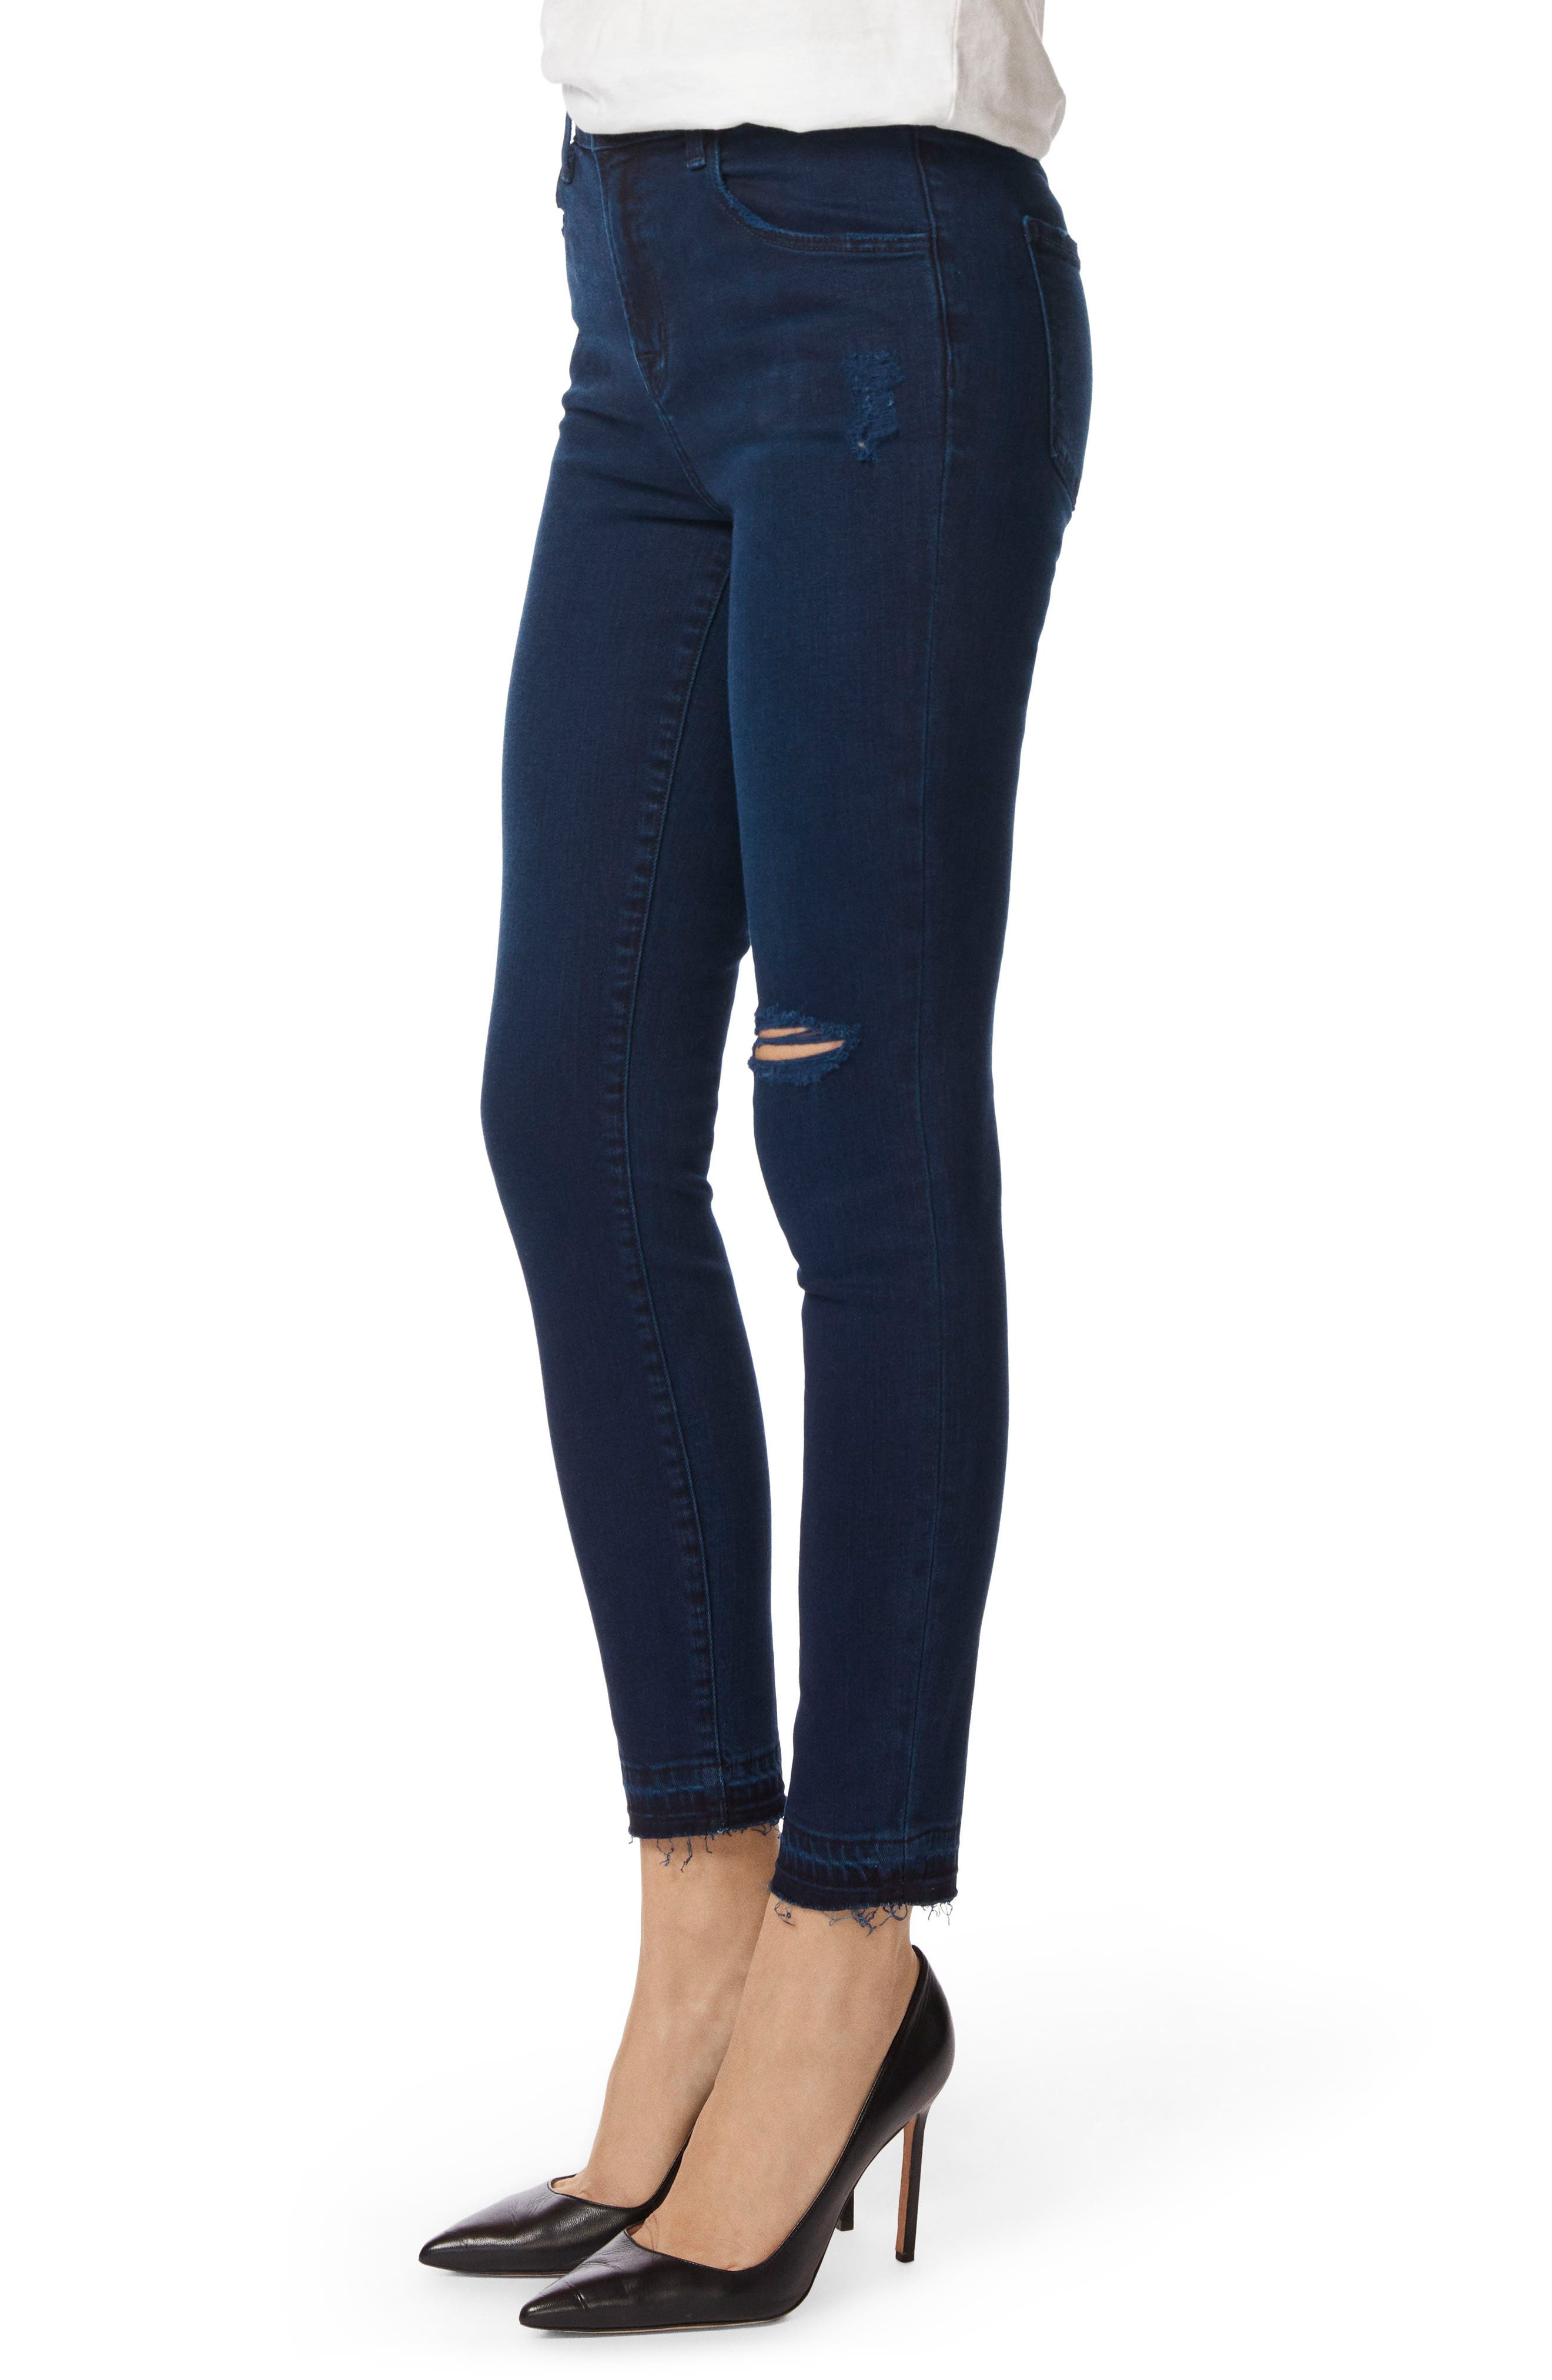 Alana Released Hem High Rise Crop Skinny Jeans,                             Alternate thumbnail 3, color,                             INVOKE DESTRUCT